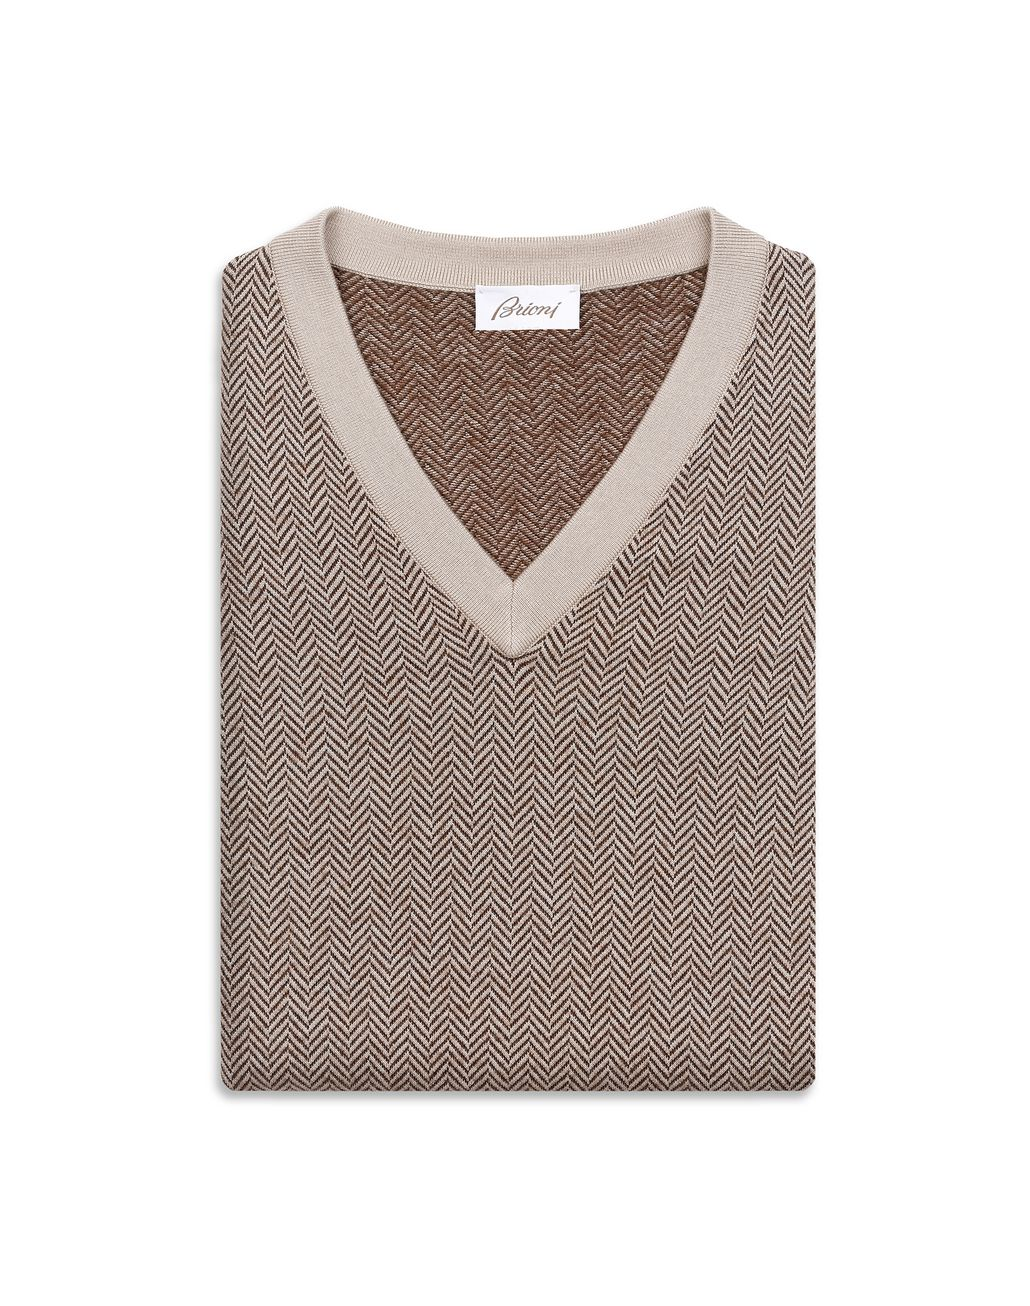 BRIONI Camel and Brown Herringbone V Neck Sweater Knitwear Man e